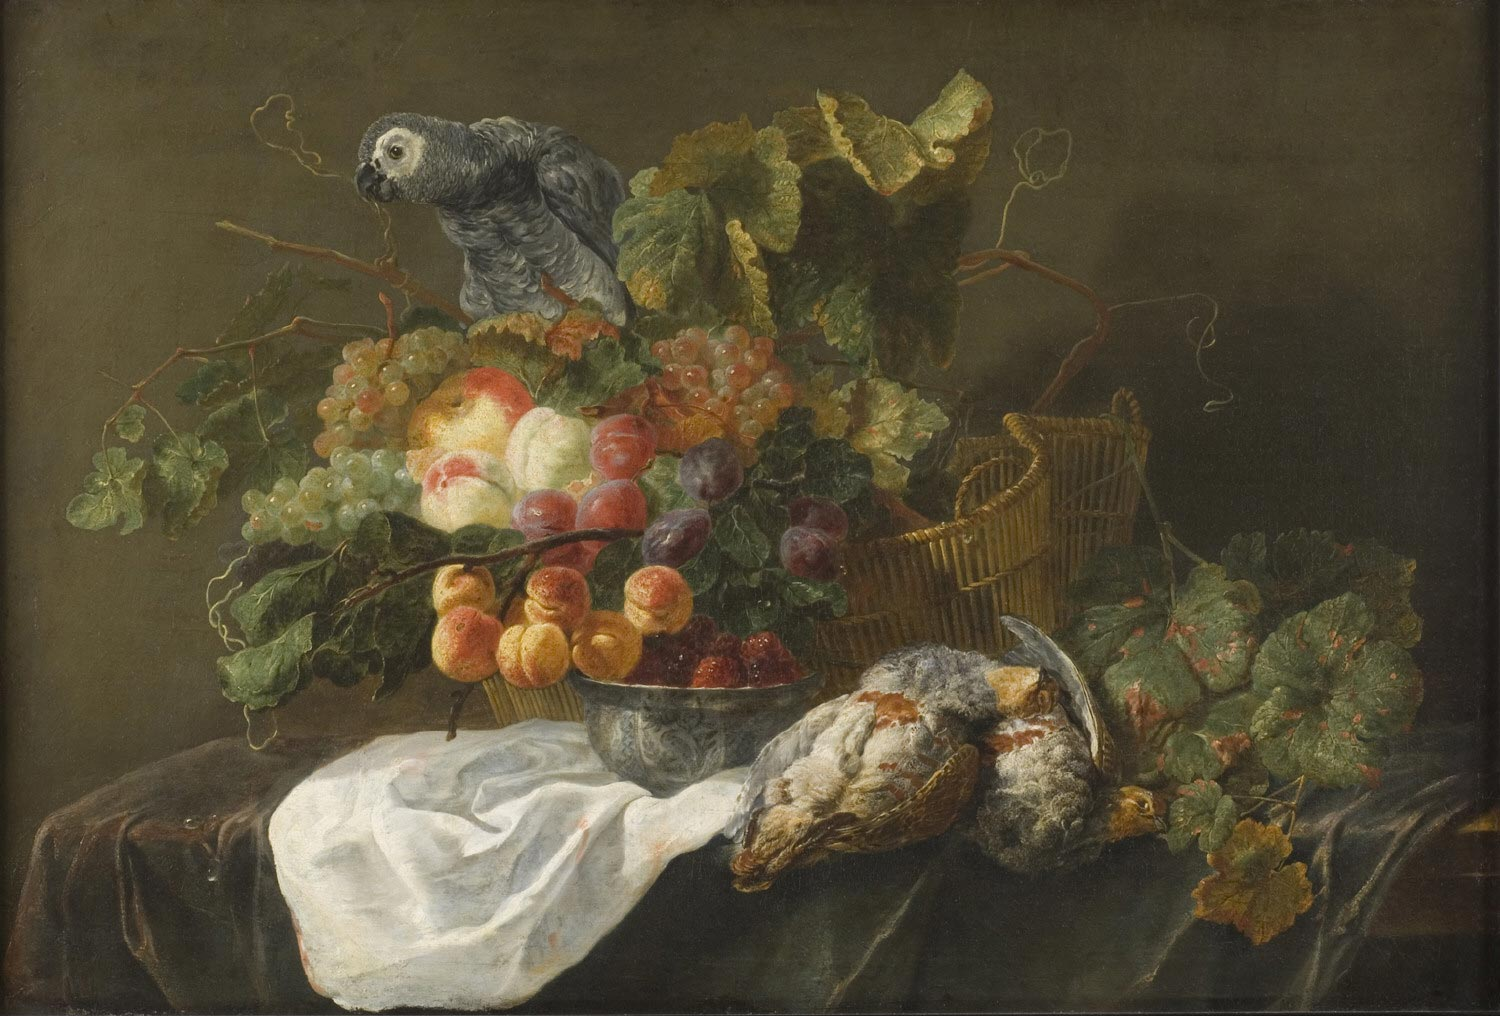 Still Life with Fruit, Dead Partridges, and a Parrot